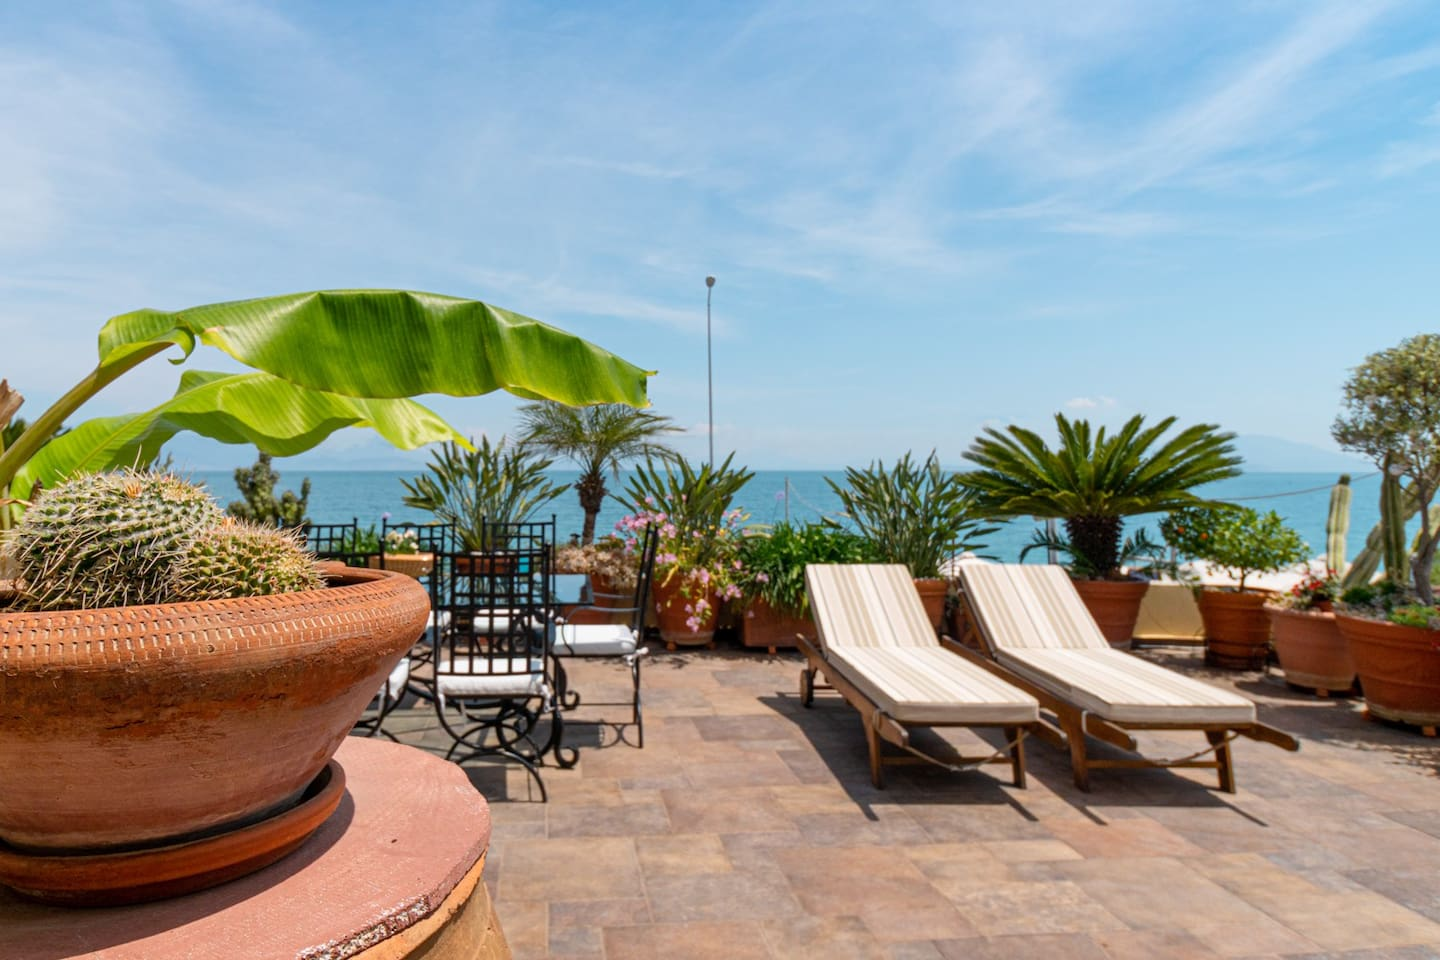 Big private Terrace with sunbeds, dining tables,swing,BBQ and unlimited seaview